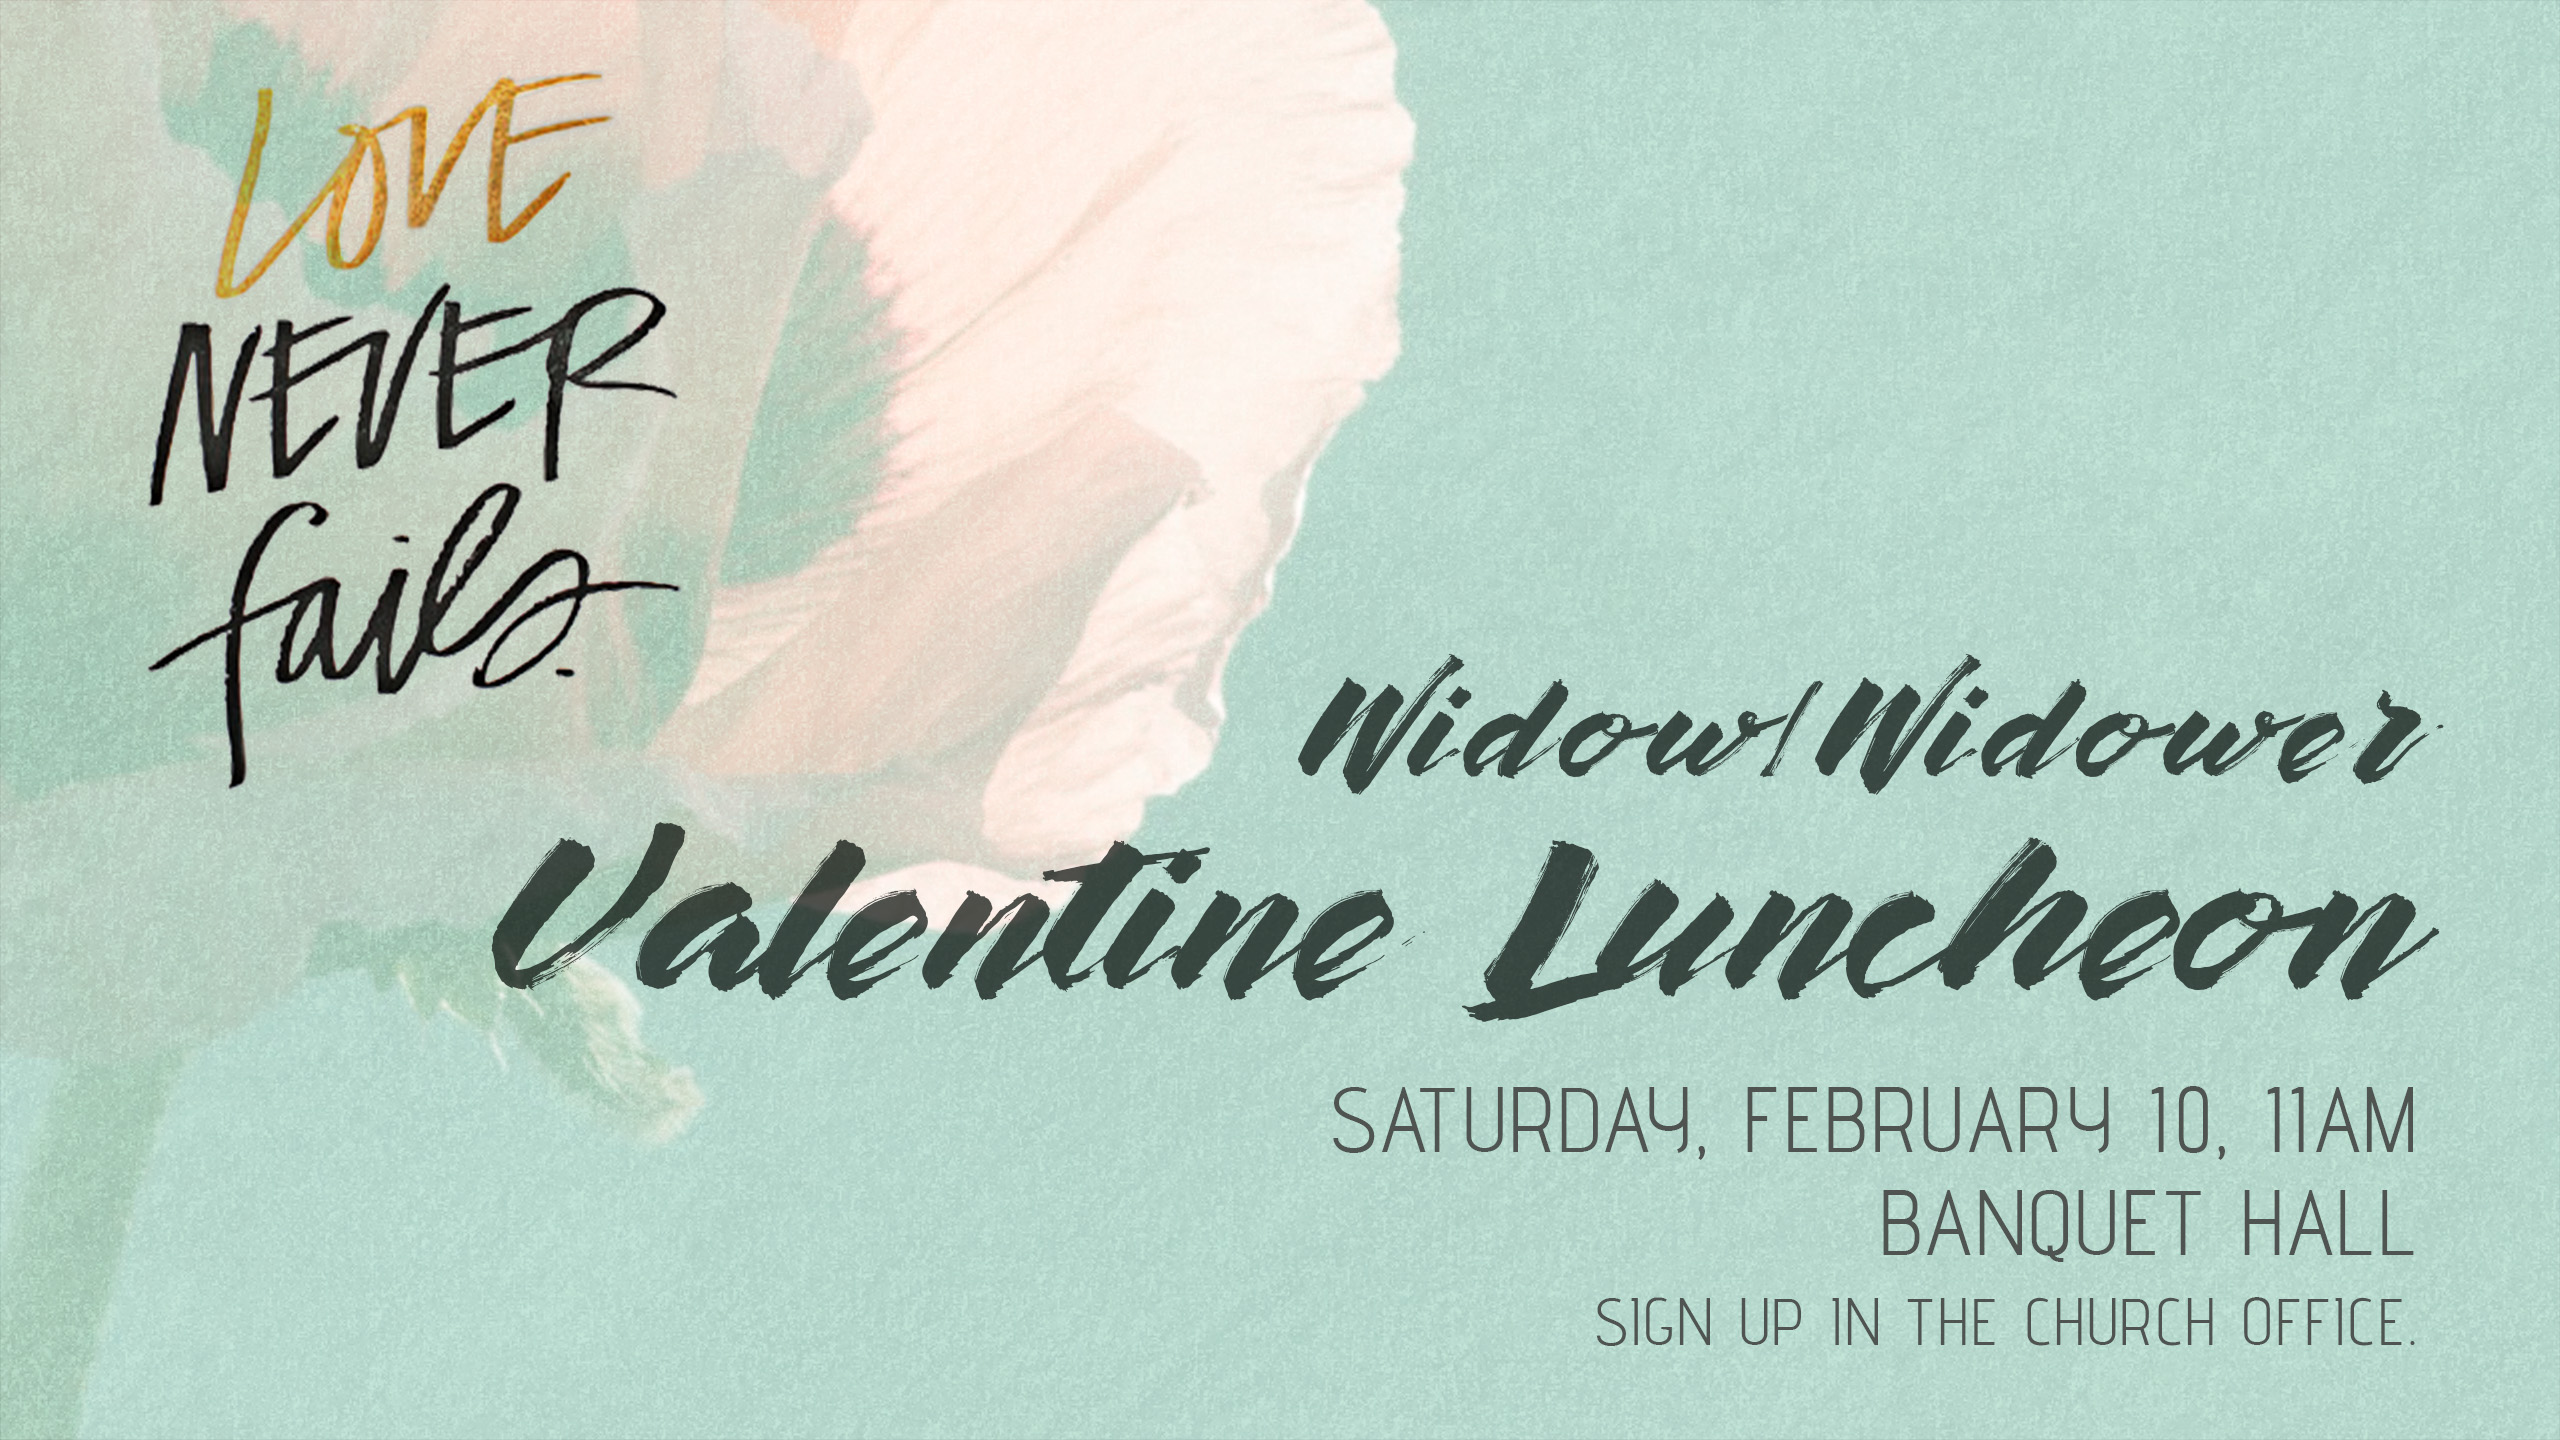 WidowLuncheon_Feb2016